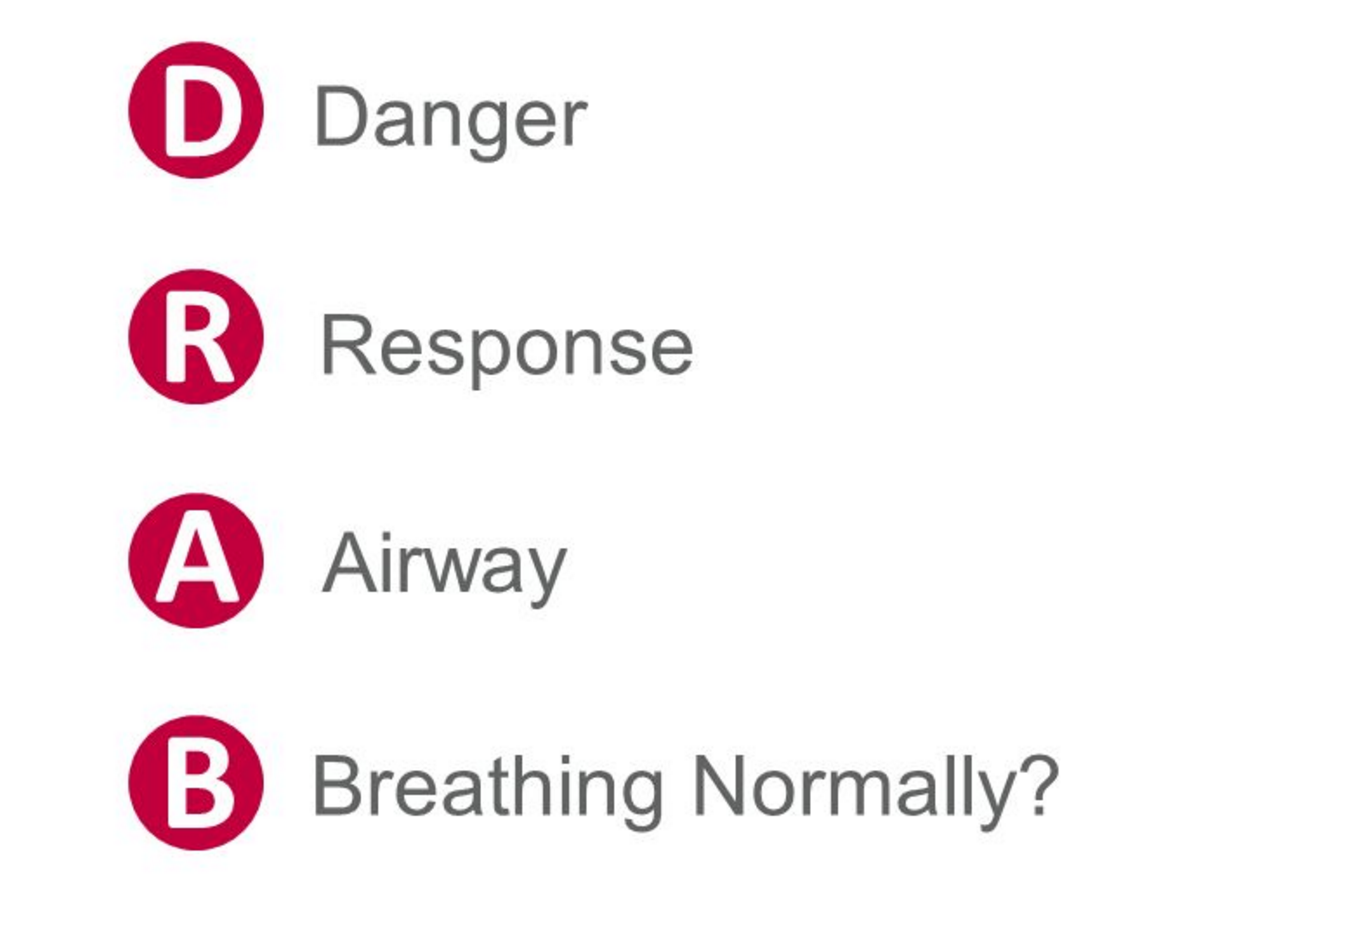 The drab emergency action plan cpr test knowing how to assess an unresponsive victim is an important first aid skill the drab mnemonic is an easy way to remember the initial steps to take when xflitez Image collections